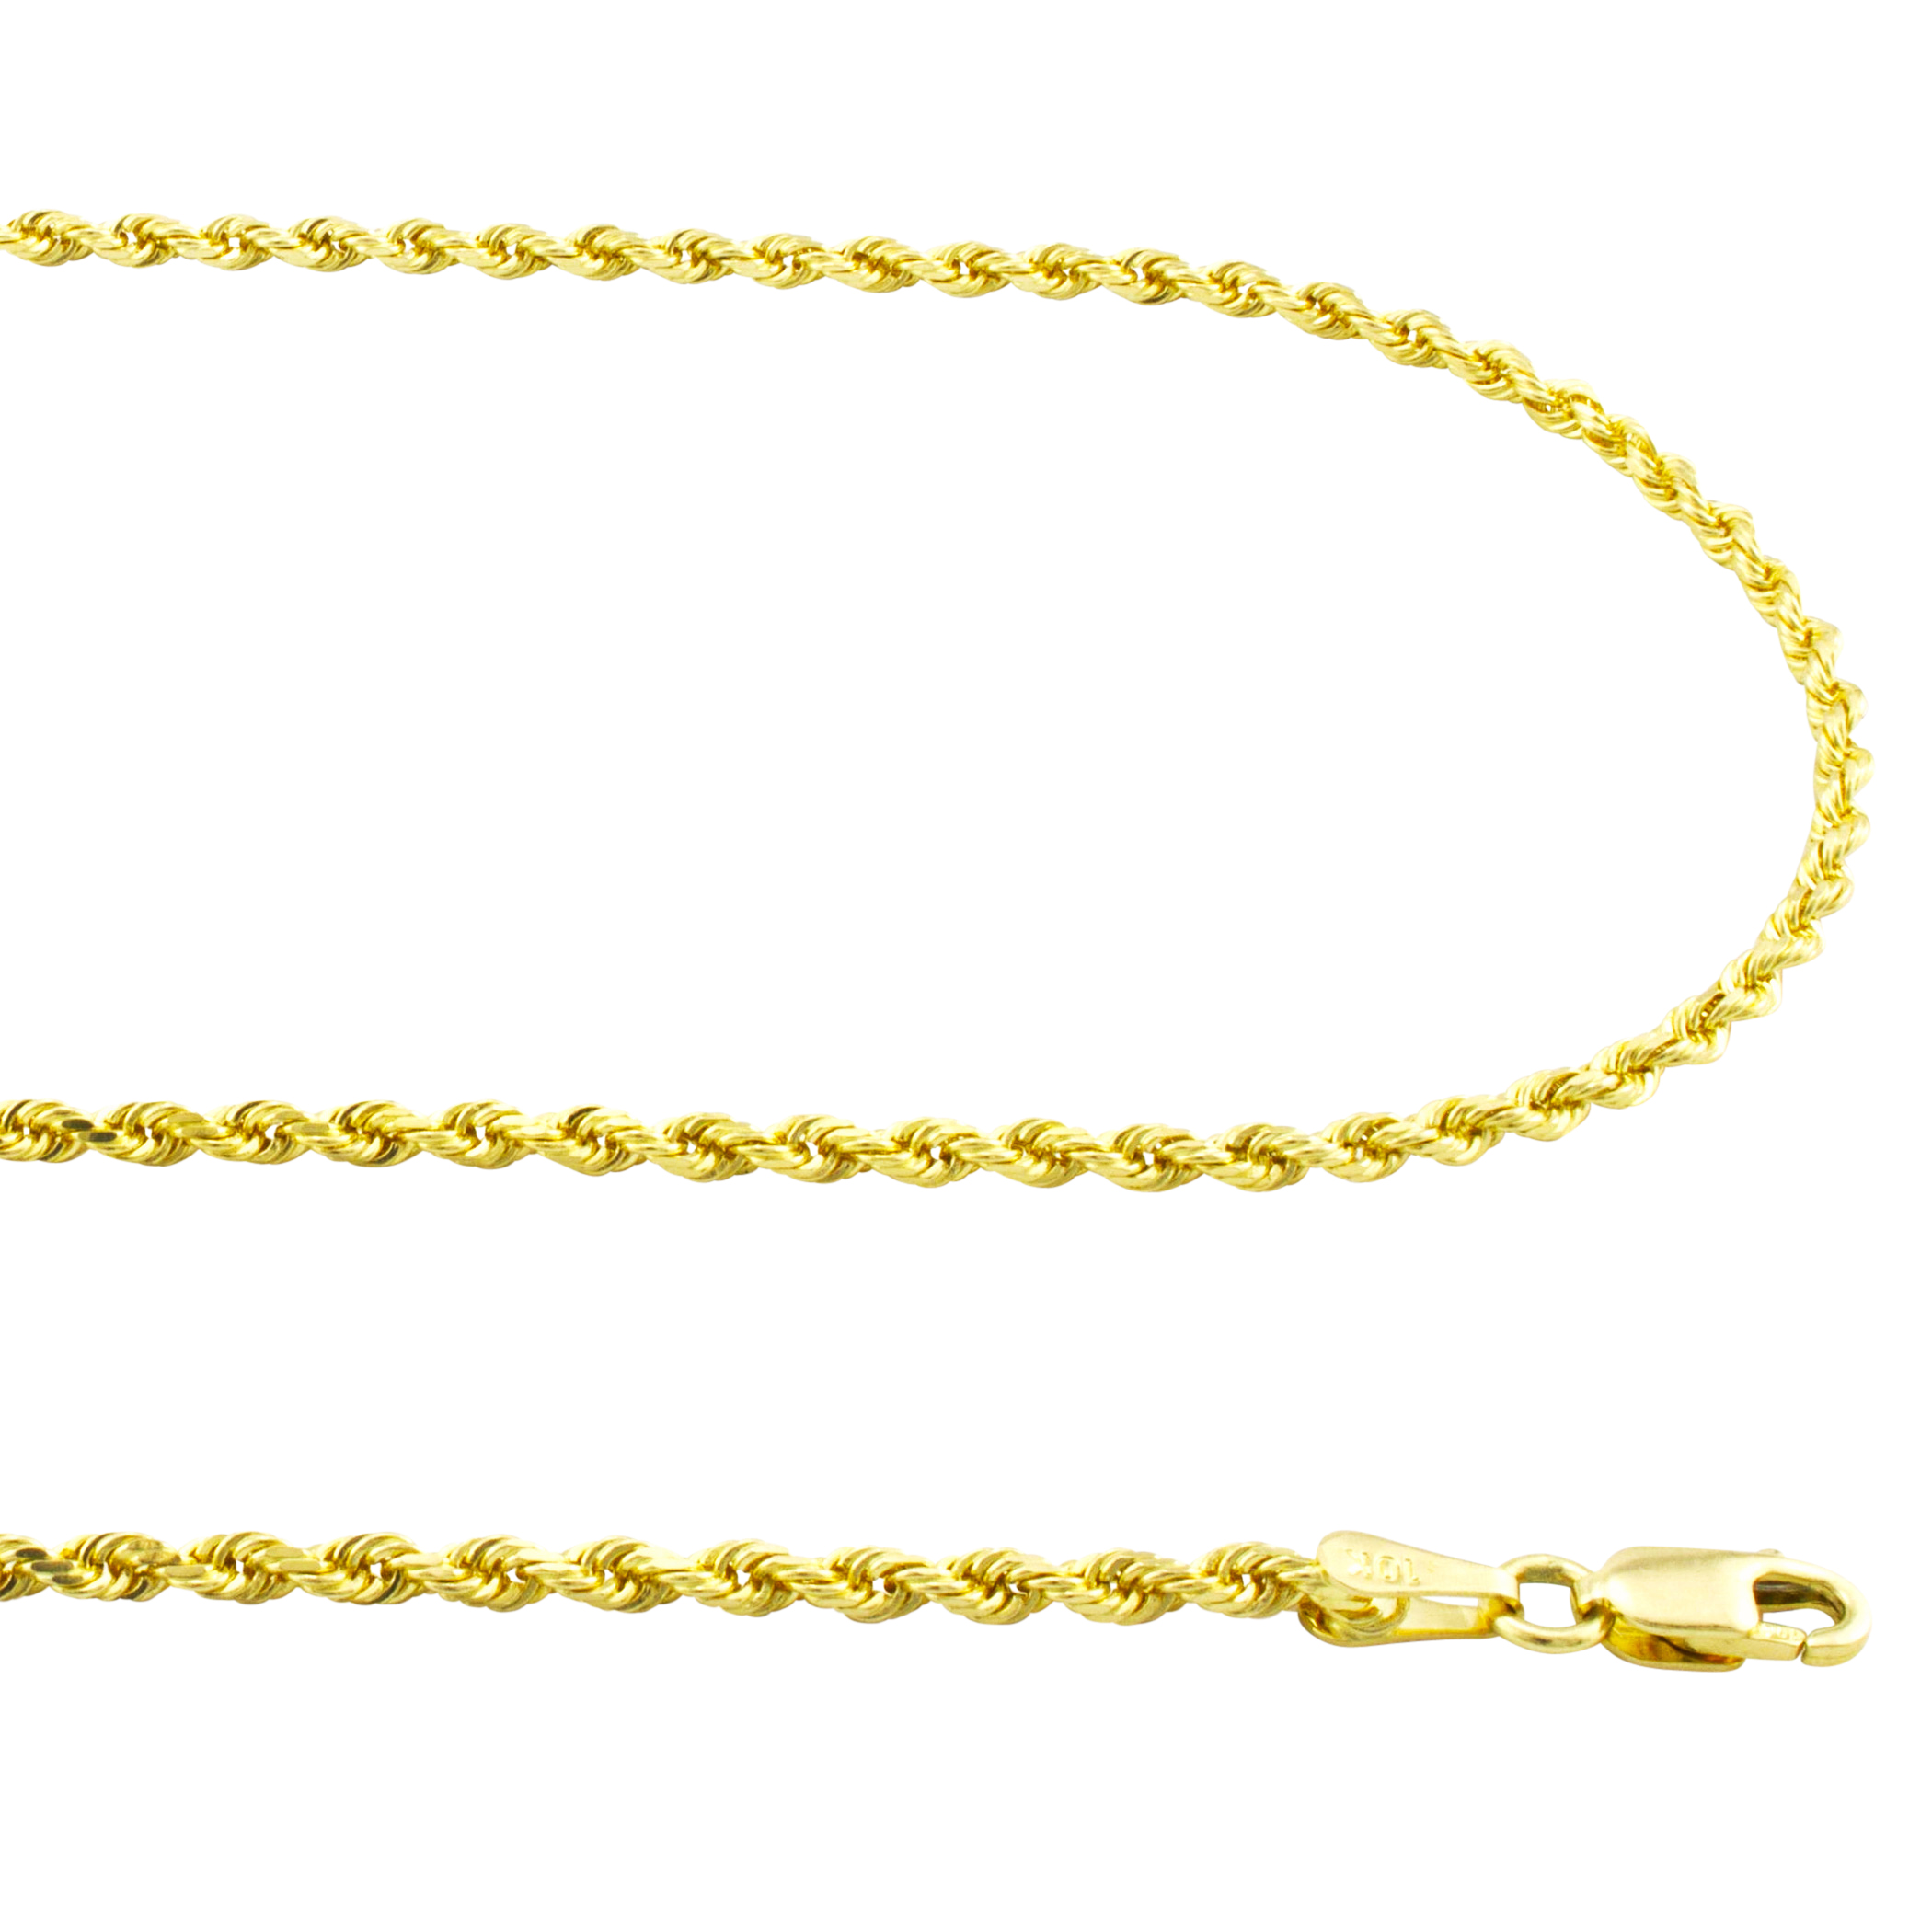 7-9 Womens 14k Yellow Gold Solid 2.5mm Diamond Cut Rope Chain Bracelet or Anklet